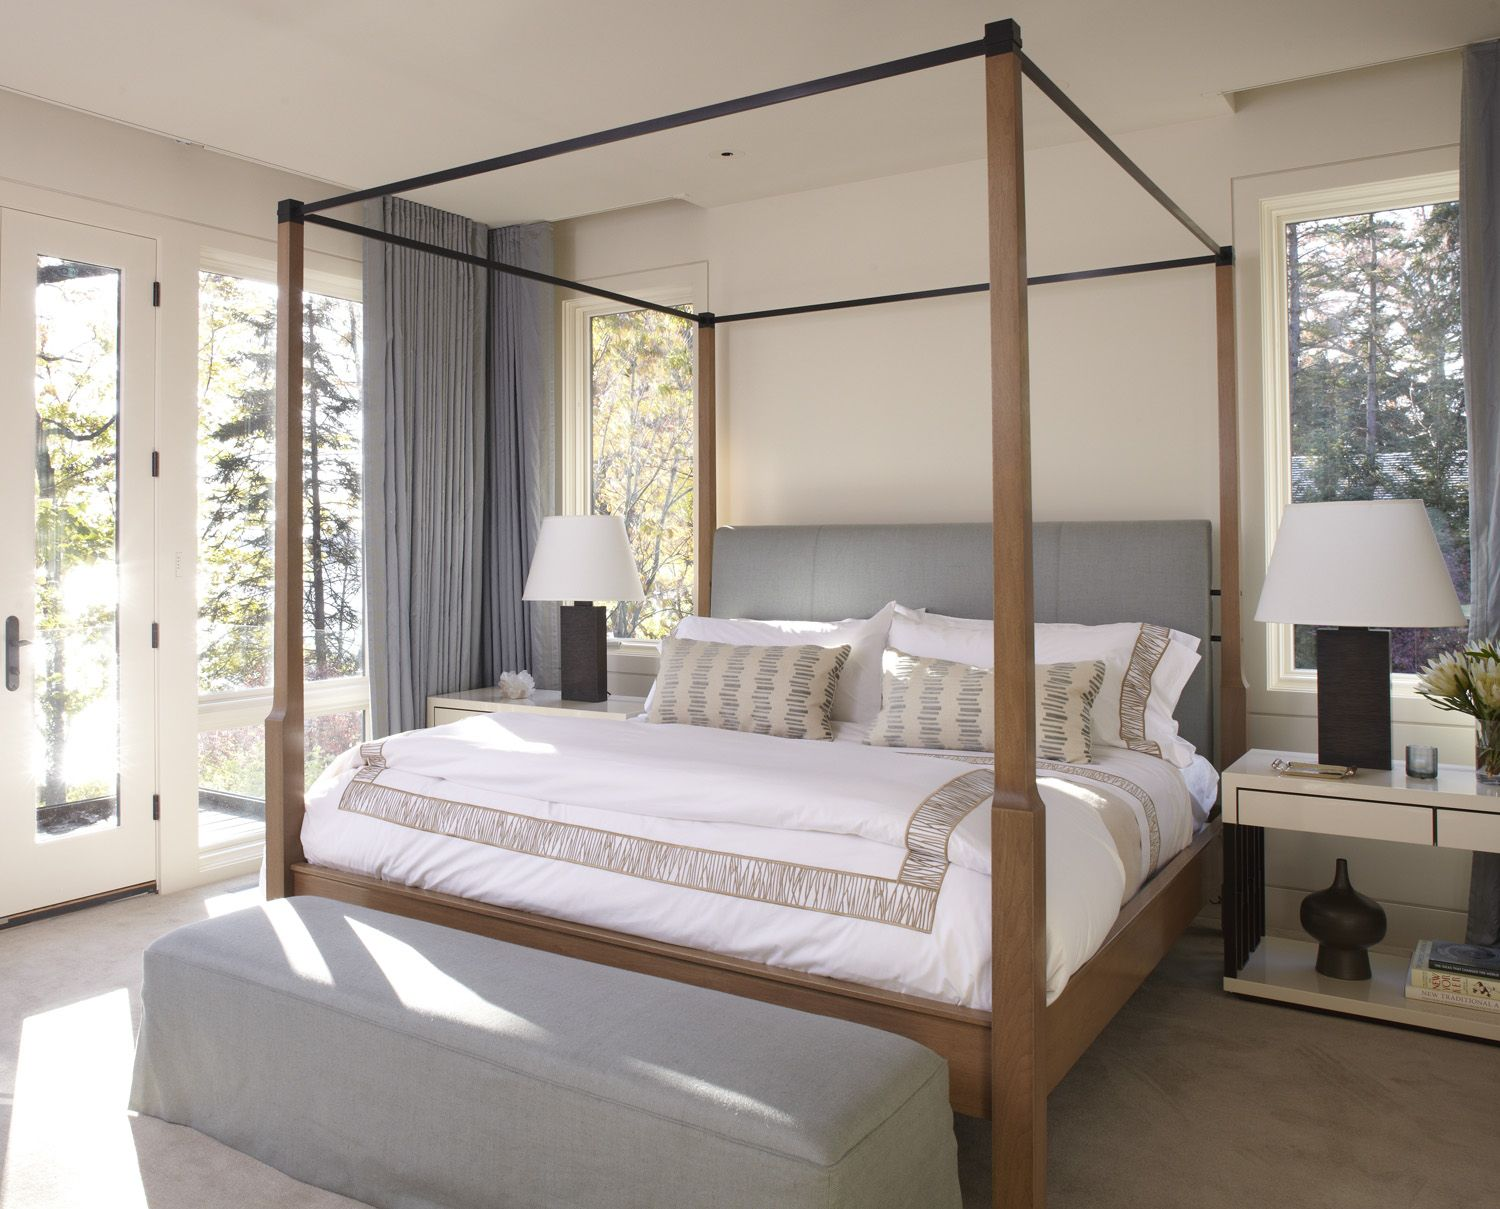 Four Post Bed Canopy 40 best canopy bed ideas - four poster beds